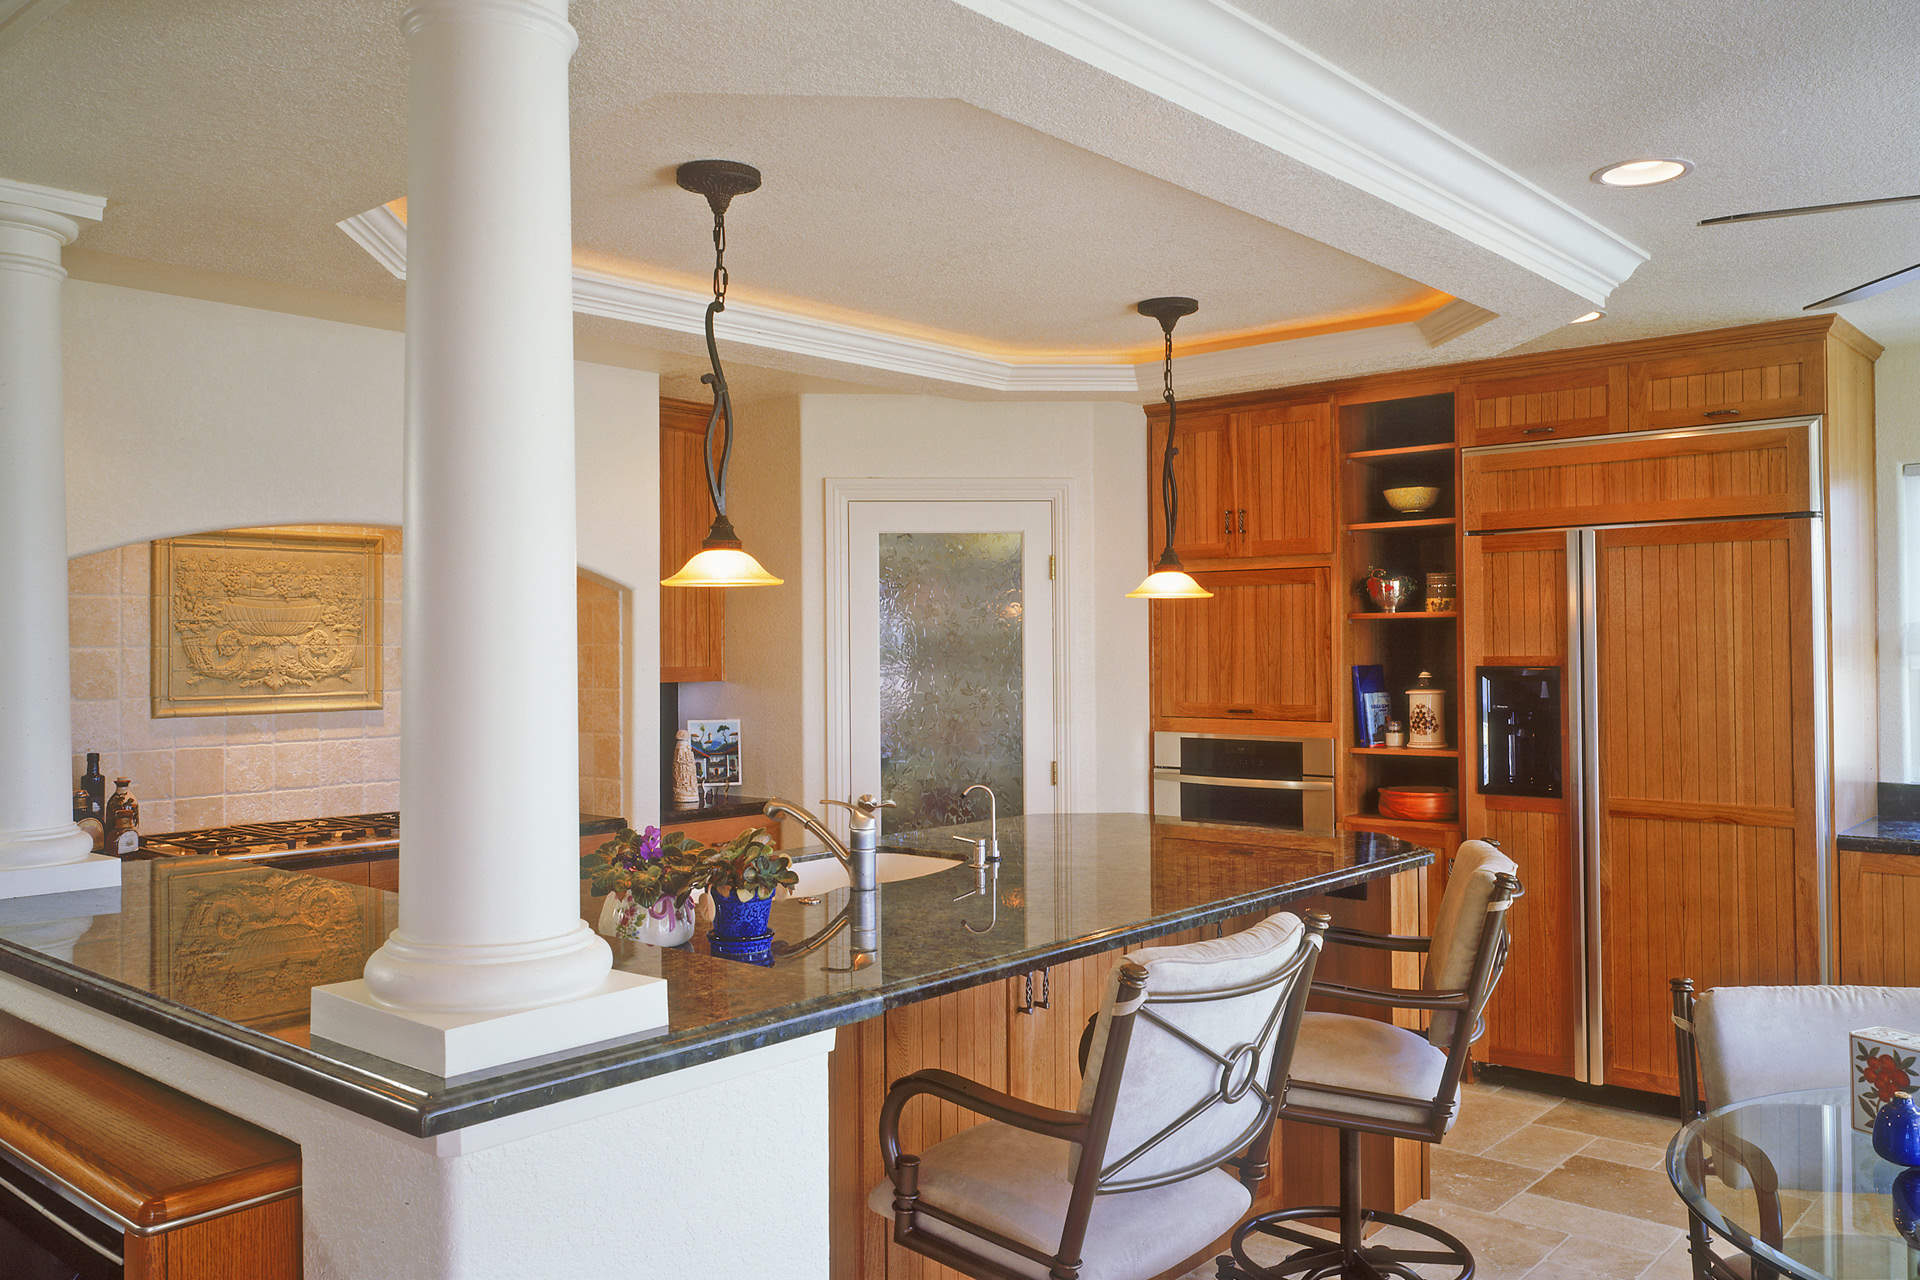 Modern Contemporary Kitchen Cabinets - Painted White Glaze ...